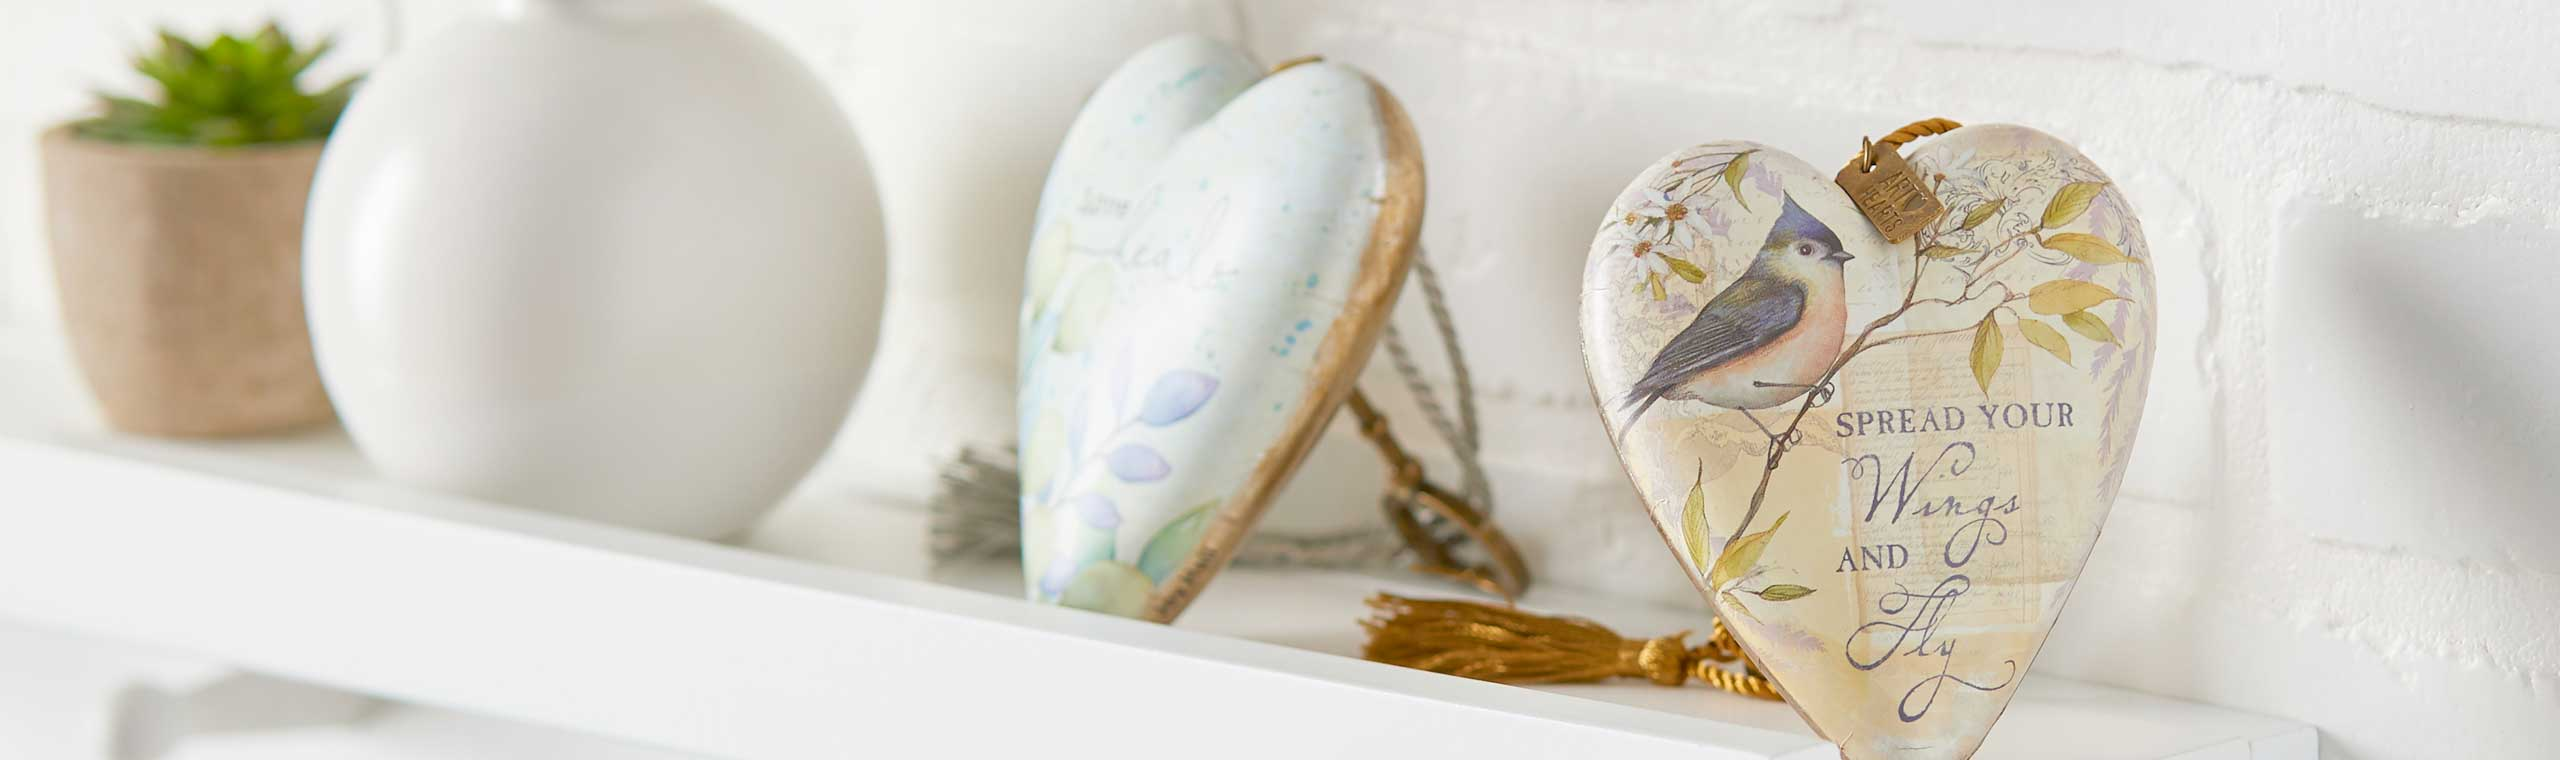 Heart-shaped sculptures sitting on a white shelf